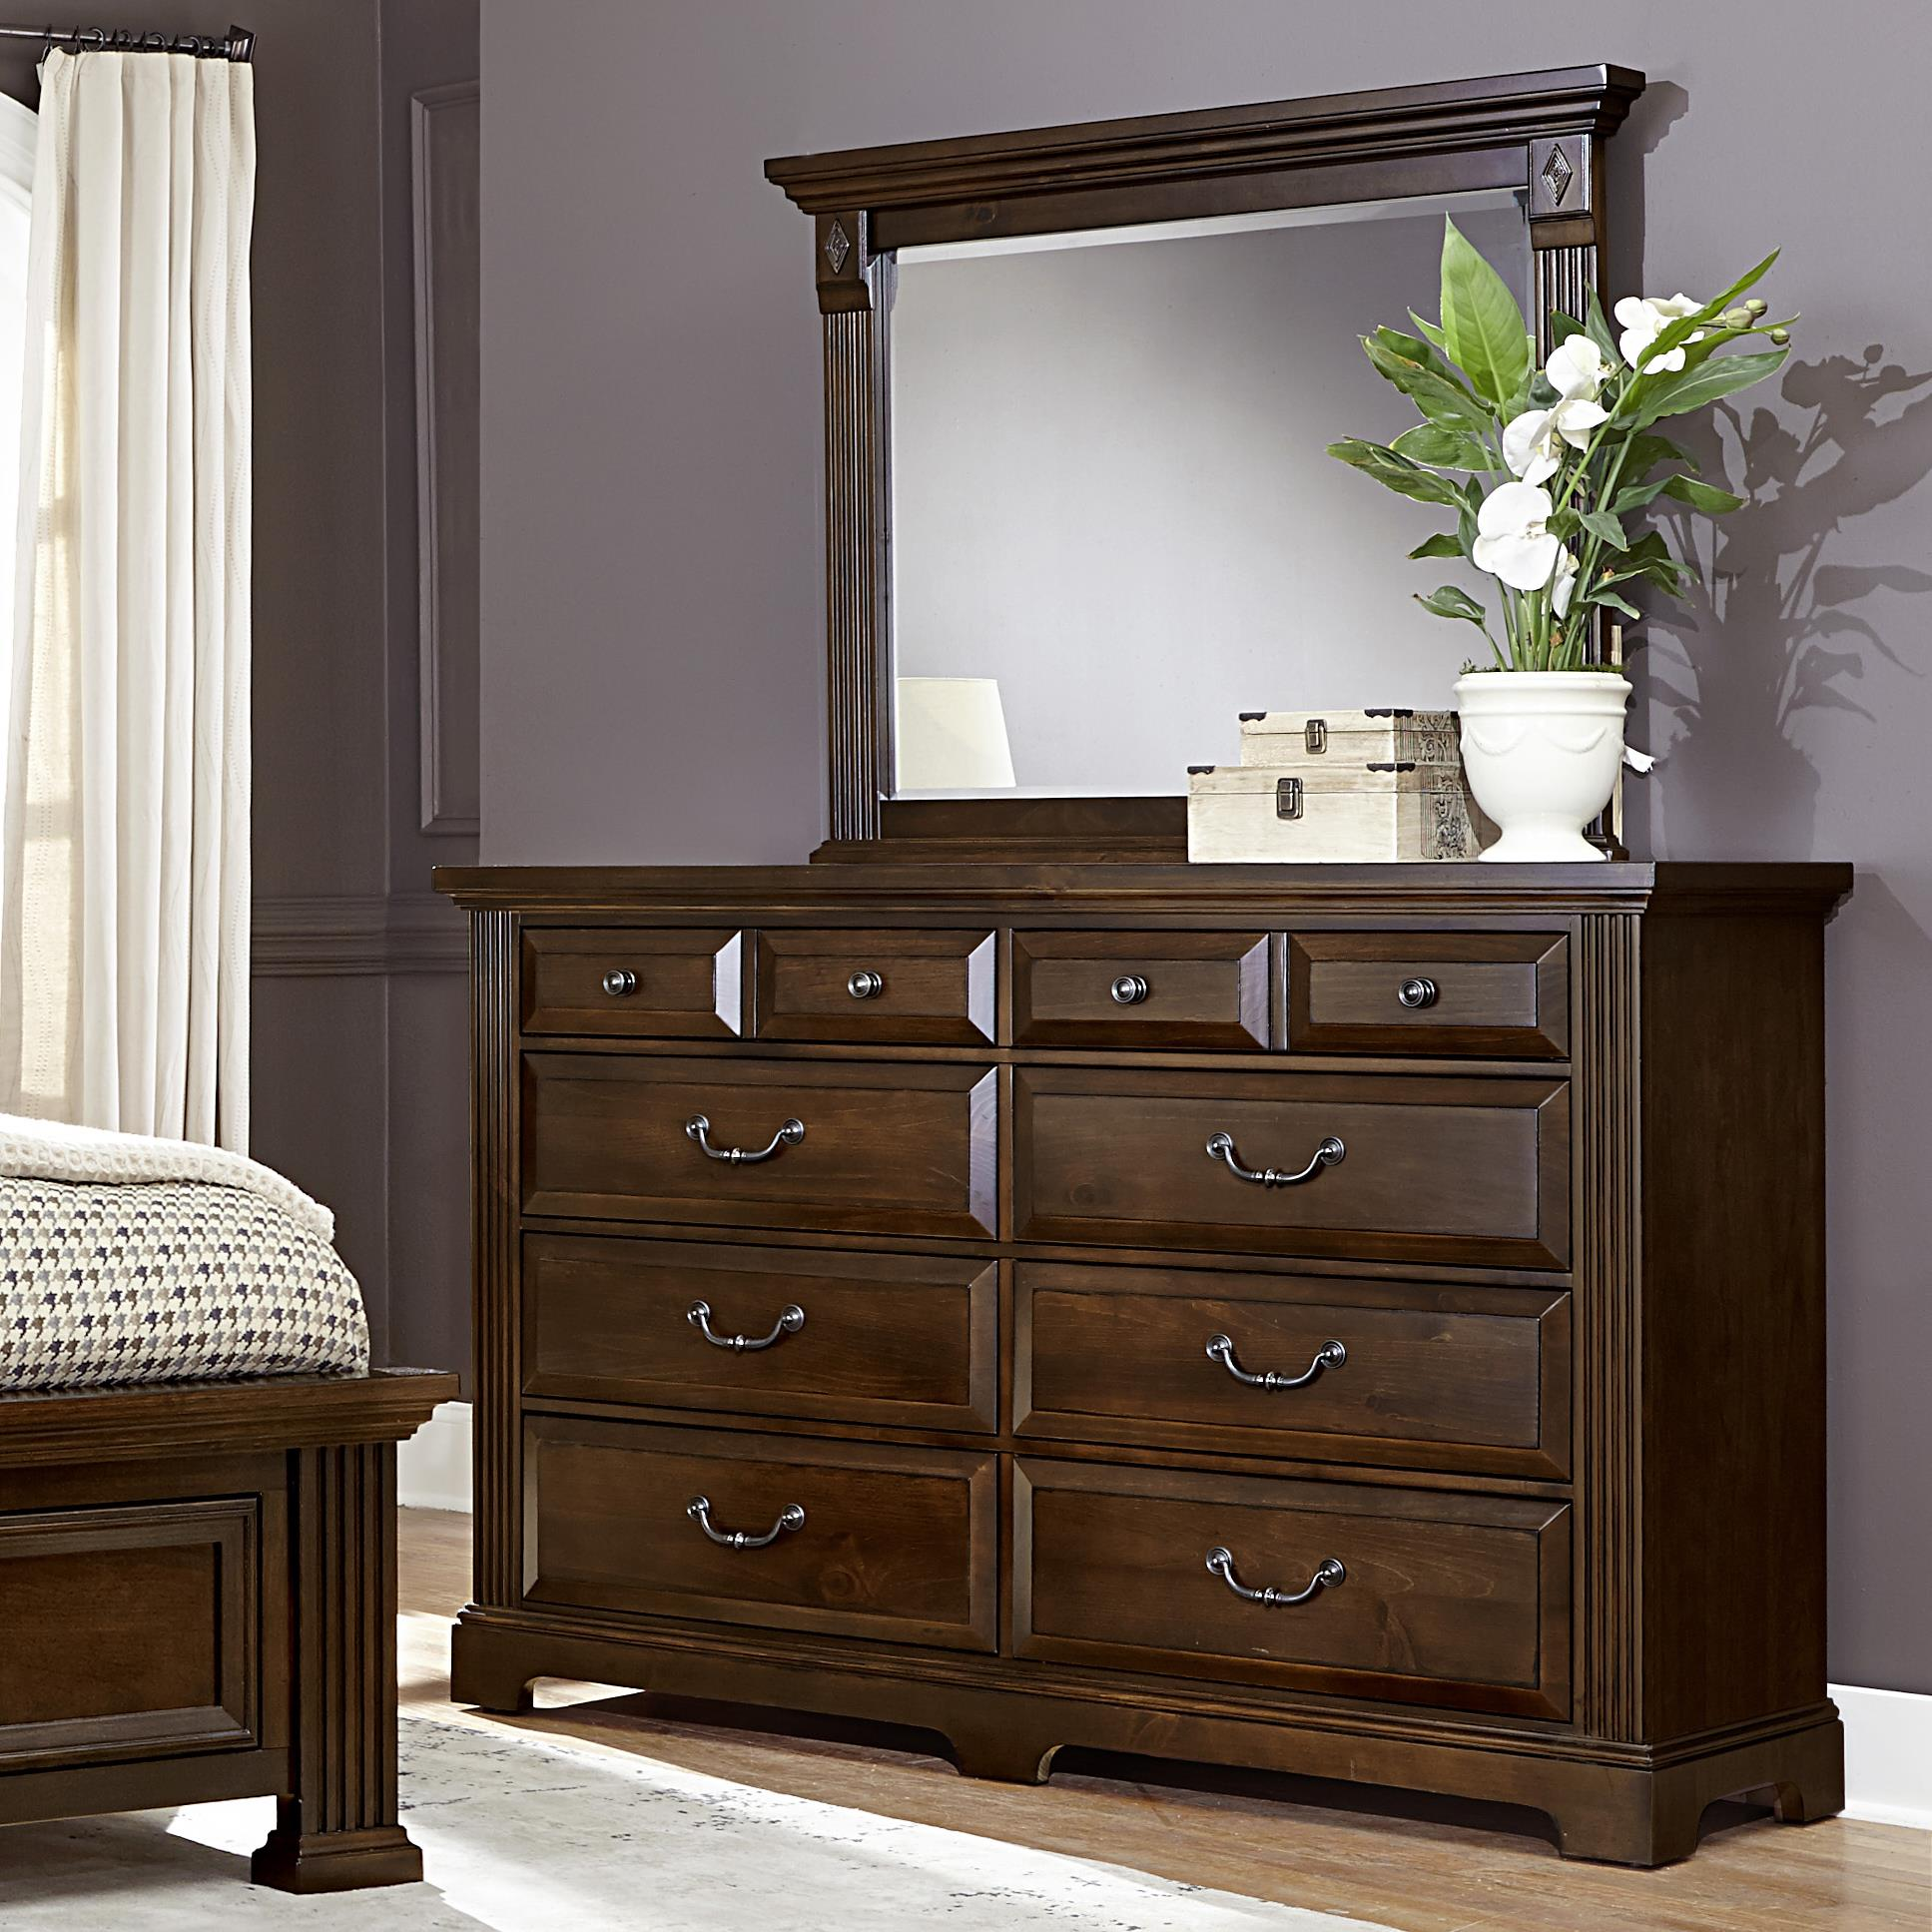 Vaughan Bassett Woodlands Triple Dresser Landscape Mirror Belfort Furniture Dresser